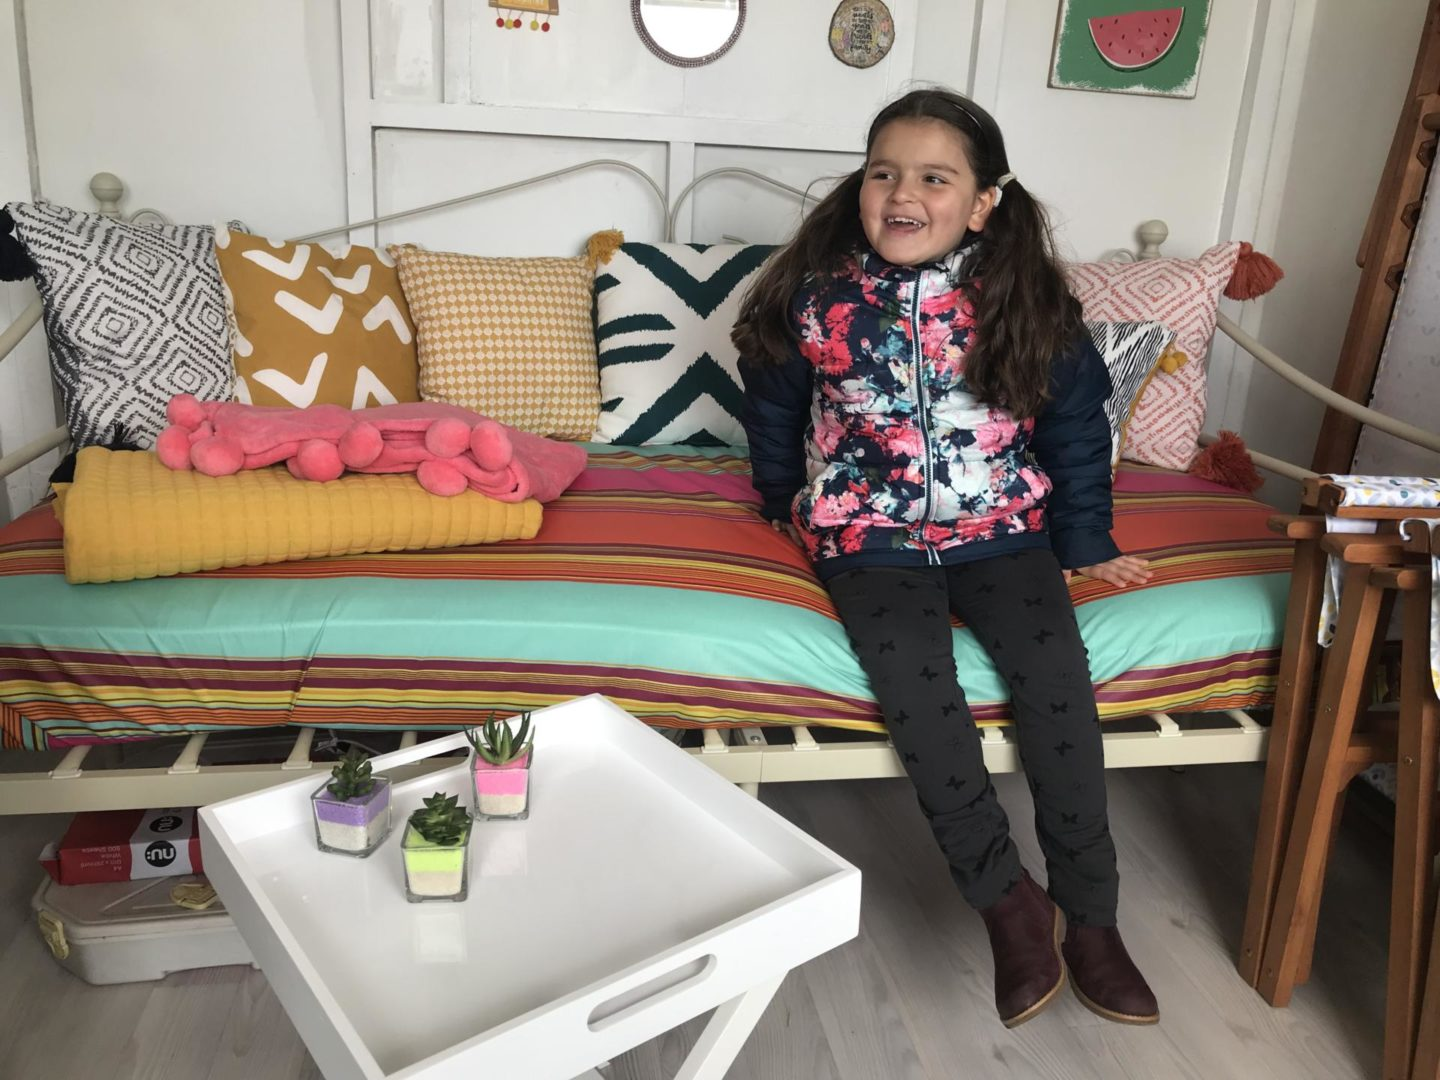 A beach hut day in Millie's Beach Huts – Loopy Lou (the yellow one!)